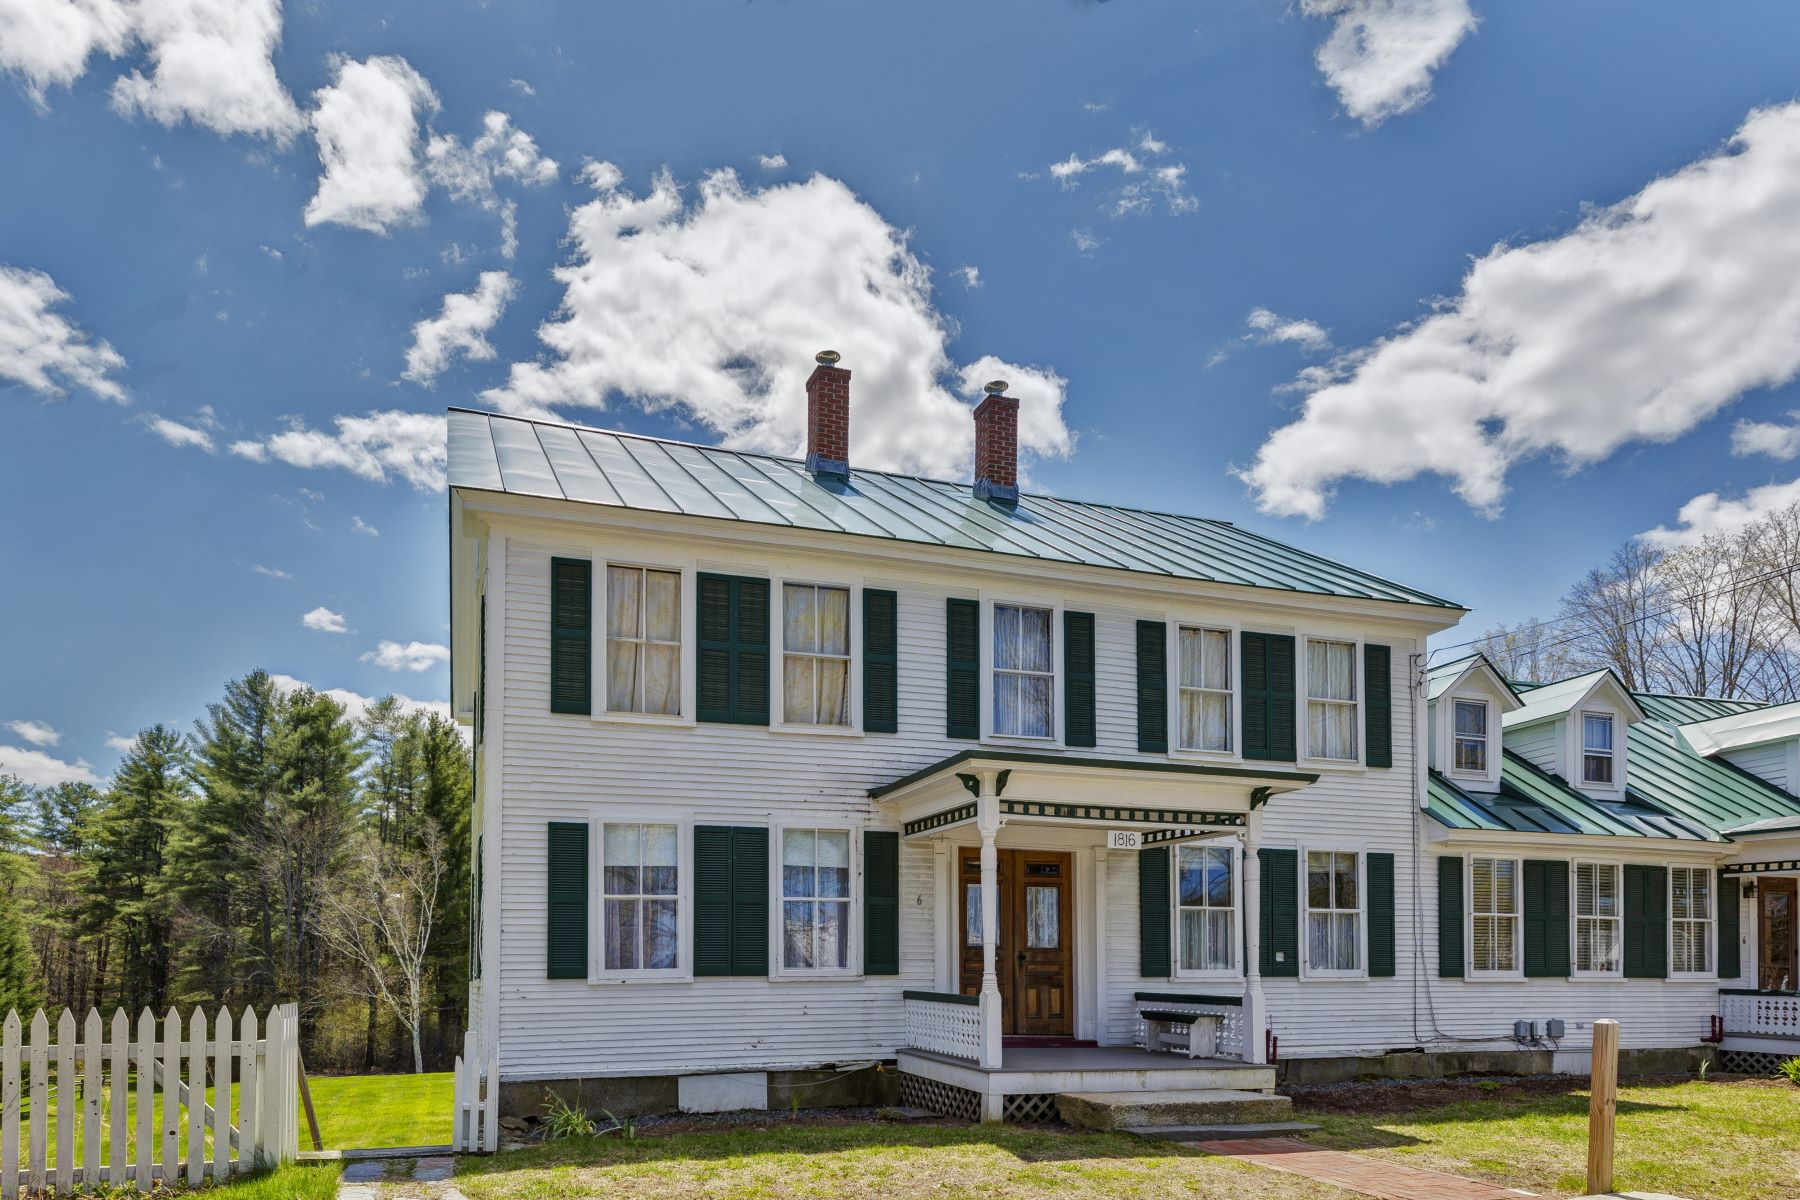 """Condominiums for Active at Lyme """"On The Common"""" Condominium 6 On The Common Unit 2 Lyme, New Hampshire 03768 United States"""